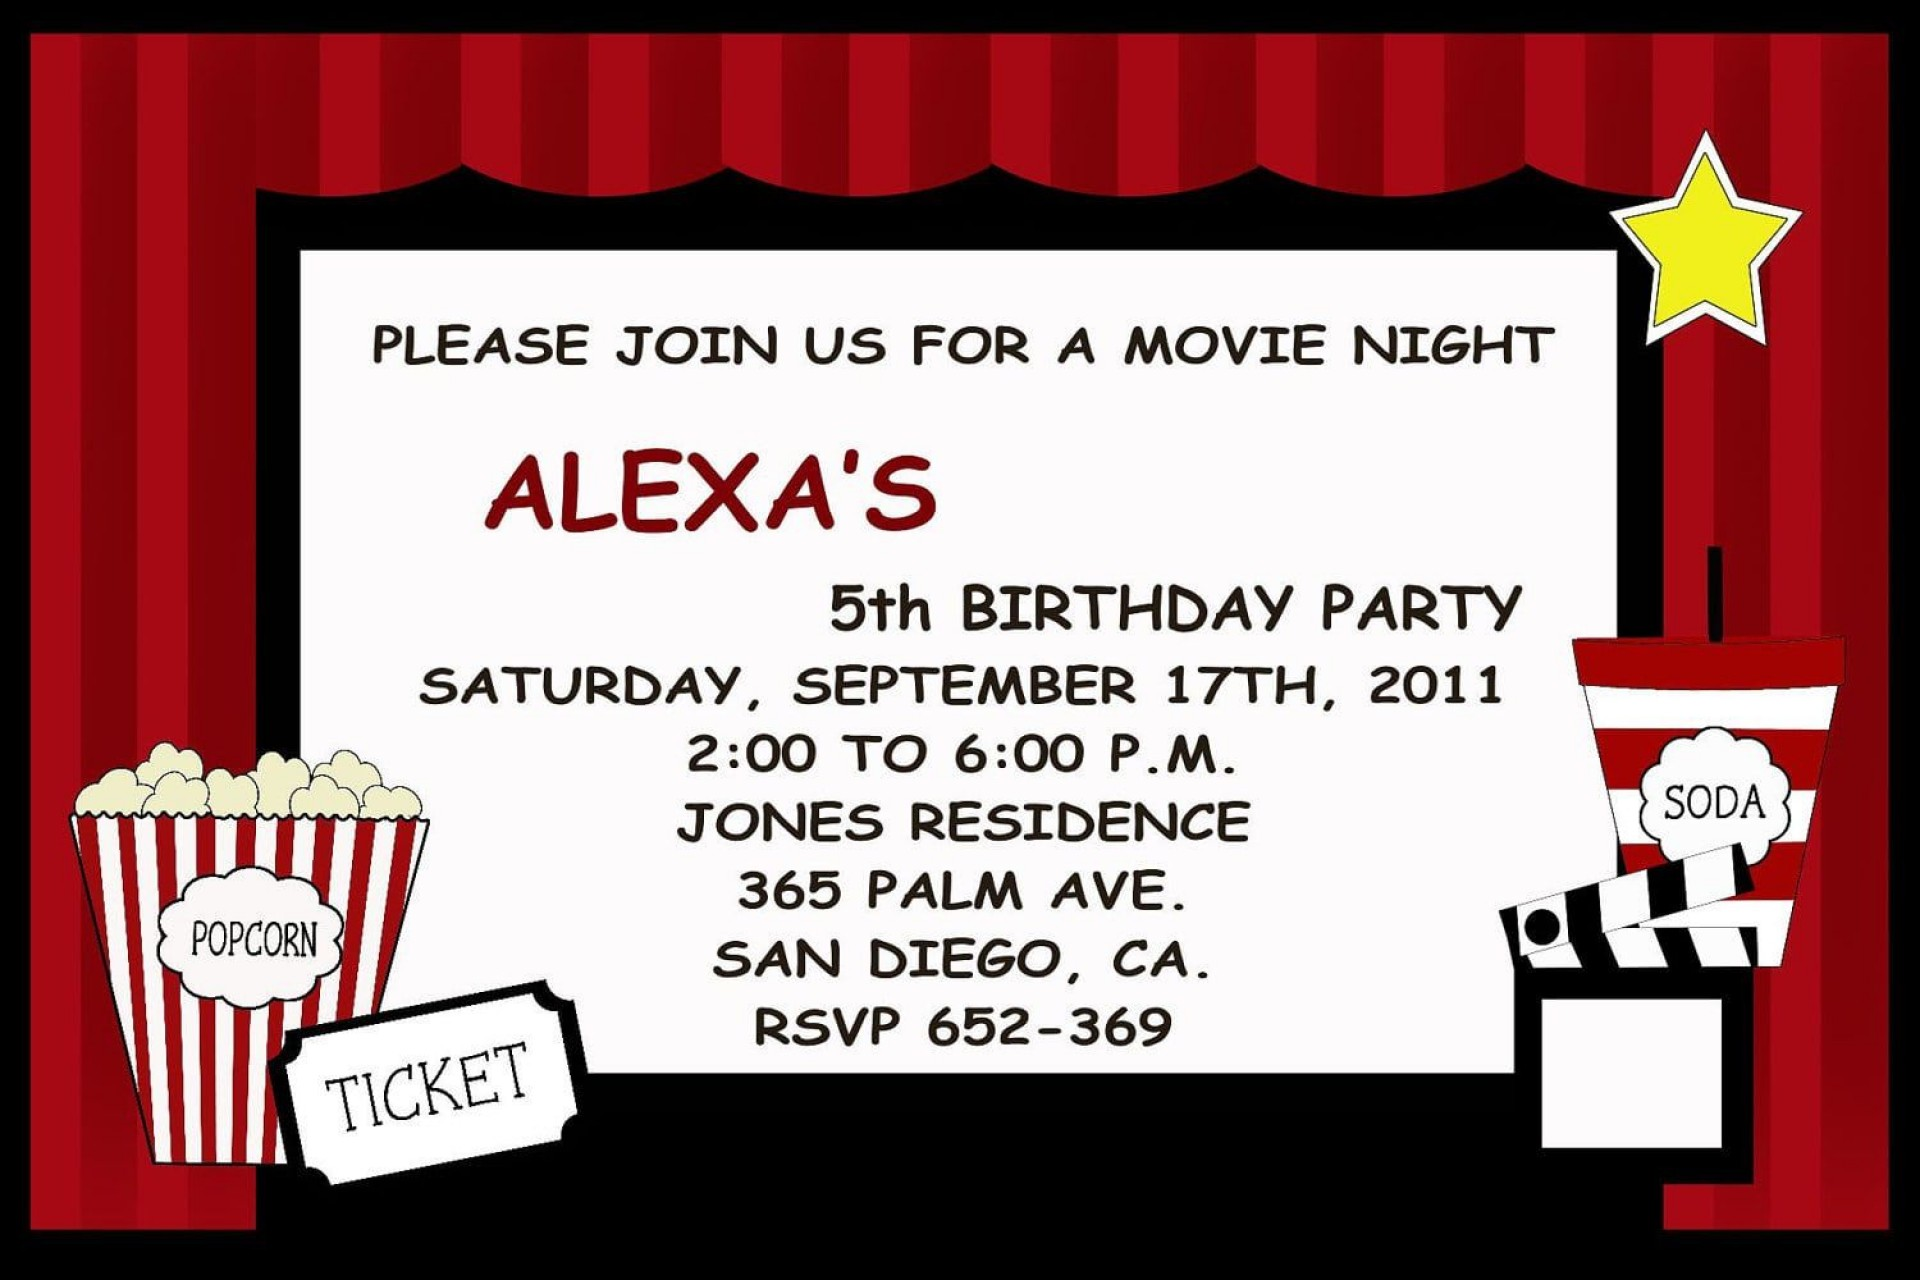 008 Magnificent Movie Ticket Invitation Template Highest Quality  Blank Free Download Editable Printable1920